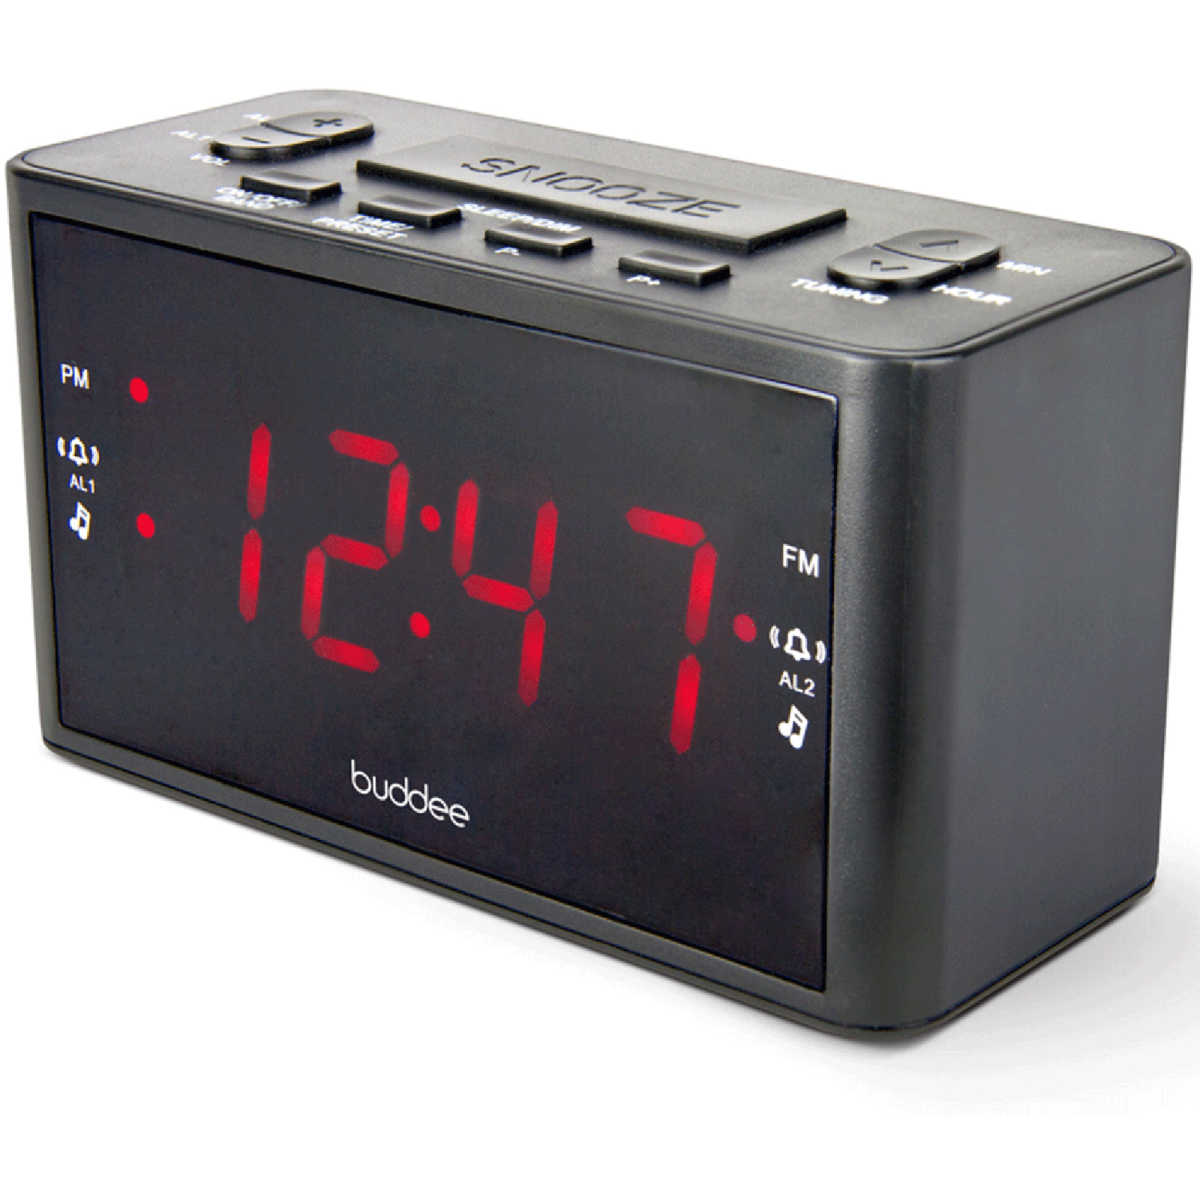 Digital Clock For Sale Buddee Dual Alarm Digital Clock Radio Black Big W